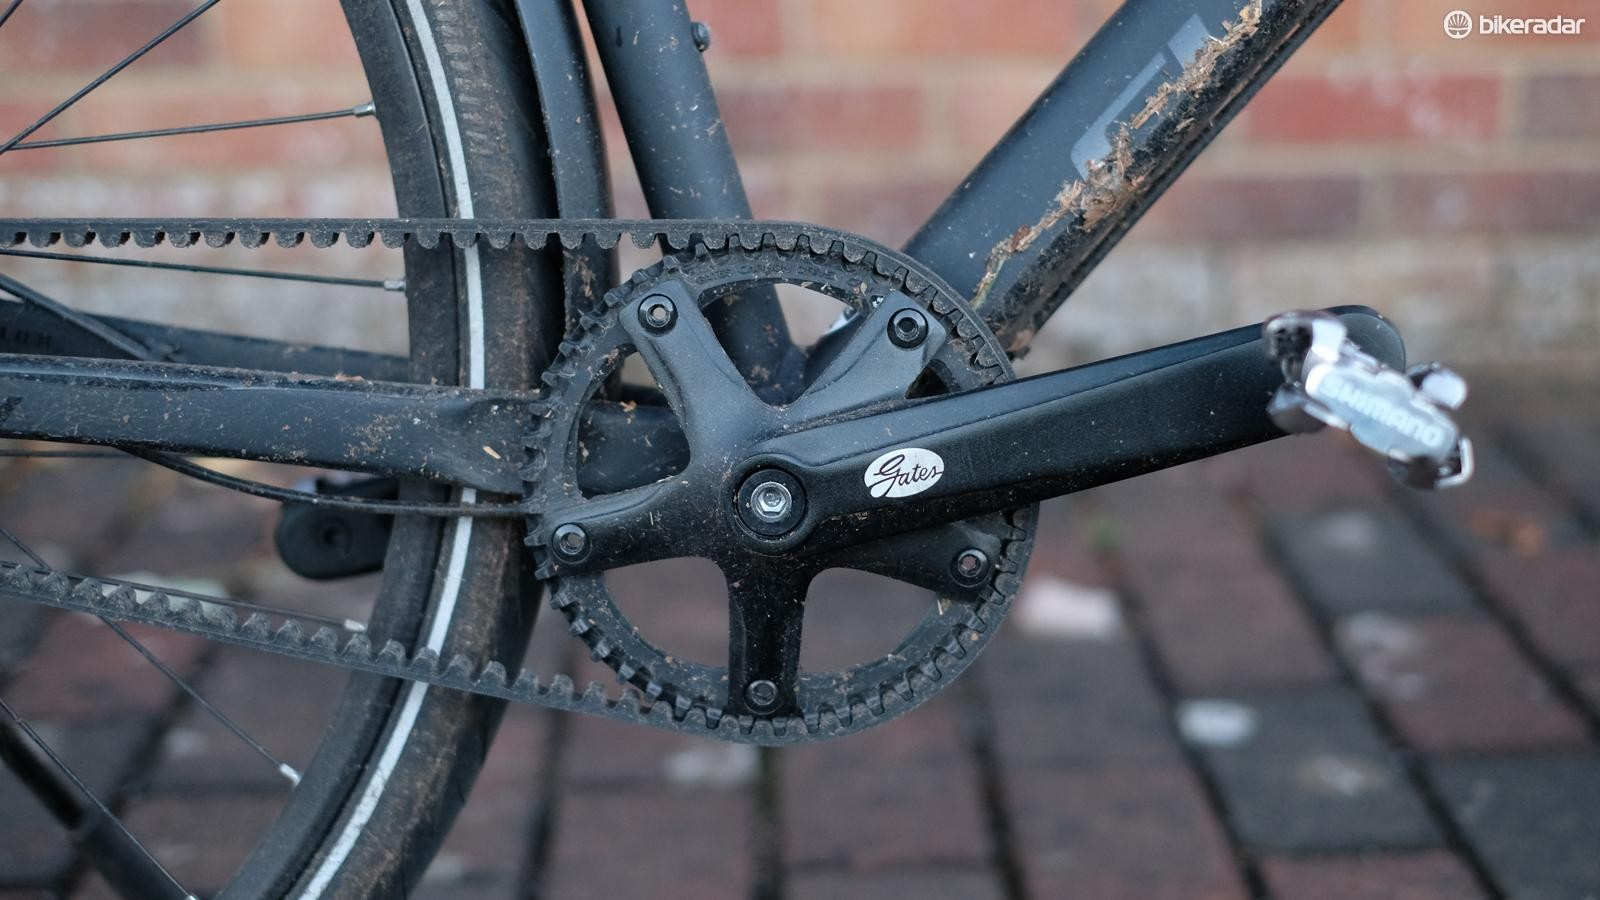 No rusty chain or oily legs